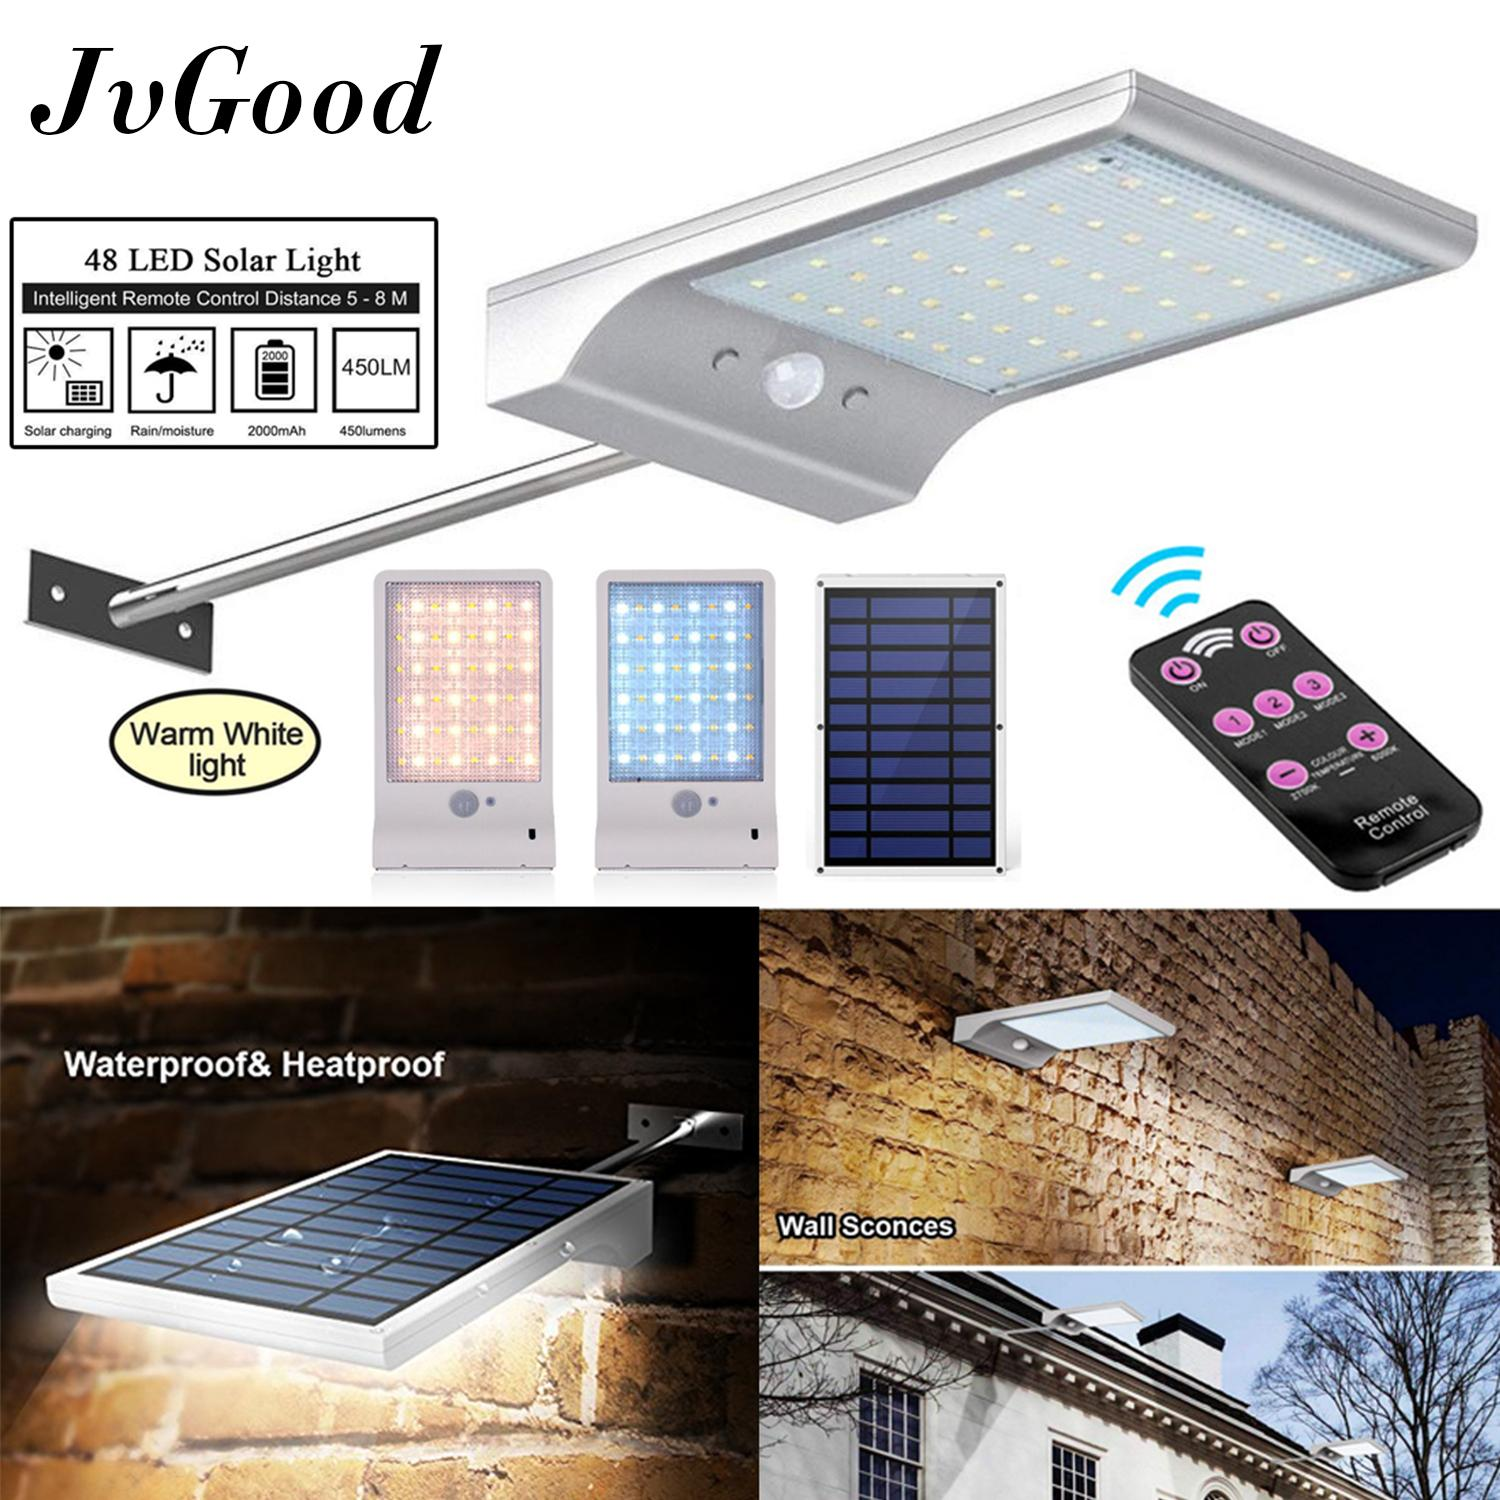 Outdoor Lighting For Sale Lights Prices Brands Review Simple Clap Operated Stairway Light Switch Circuit Homemade Jvgood Upgraded 48 Led Solar Waterproof Motion Sensor Mounting Pole Garden